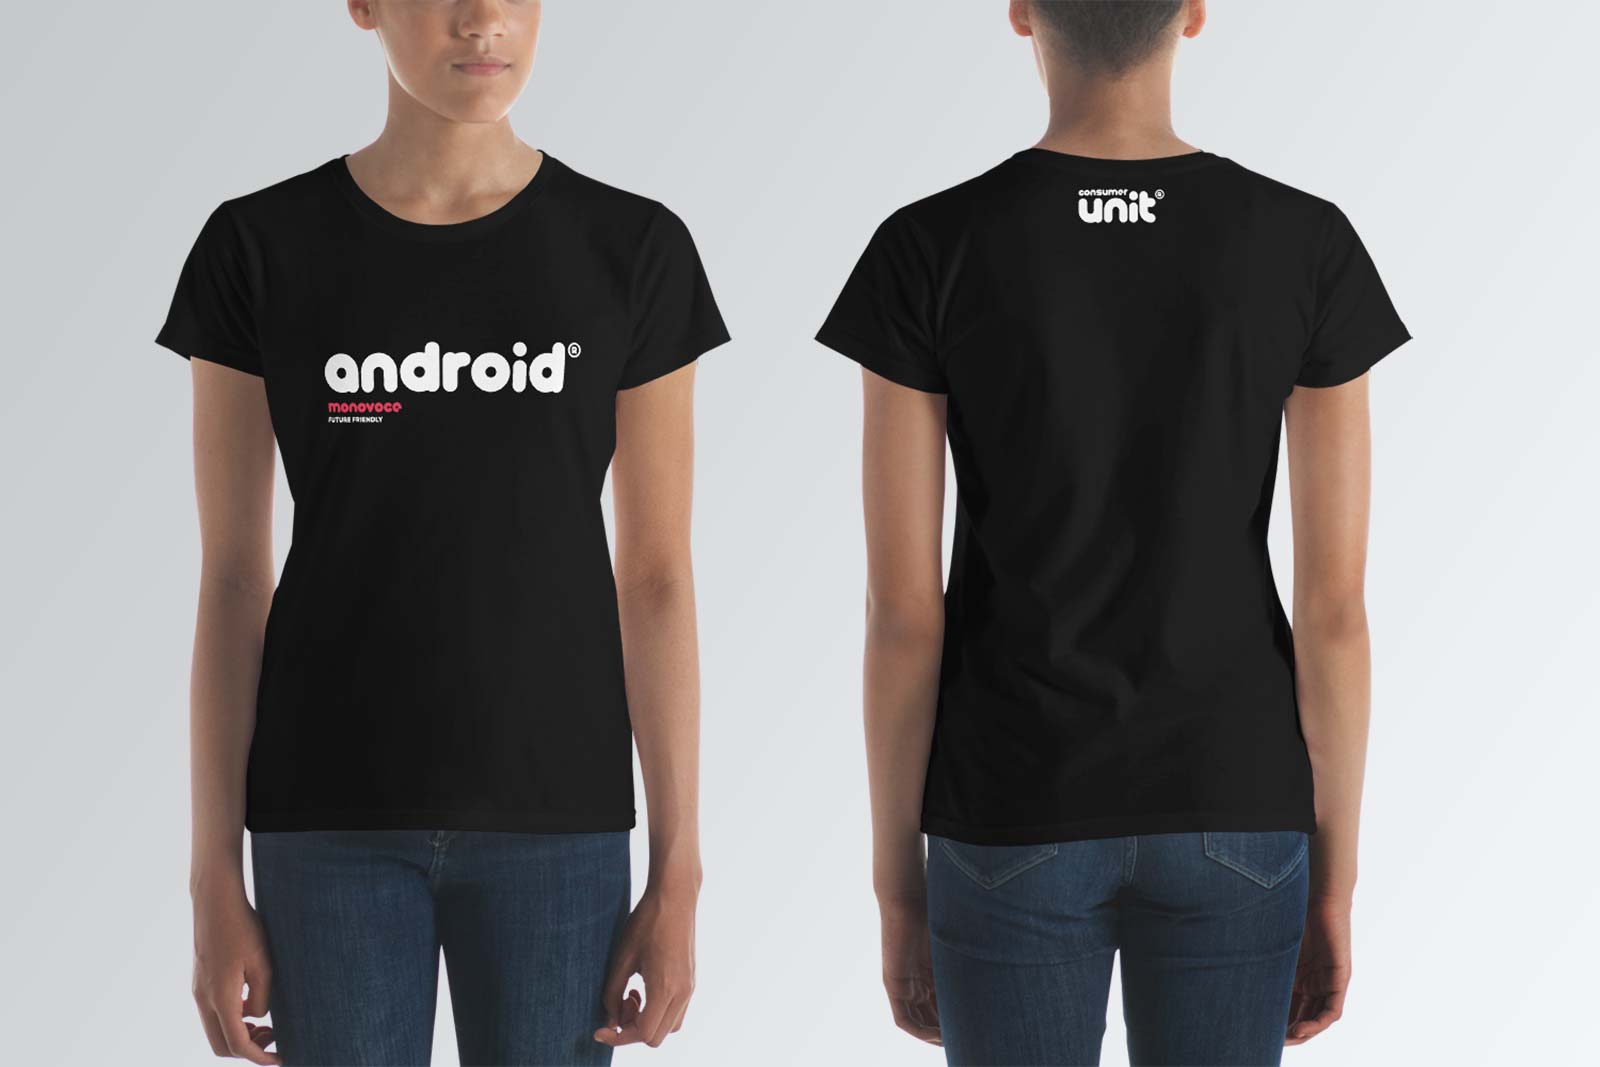 Android t-shirt for women in black